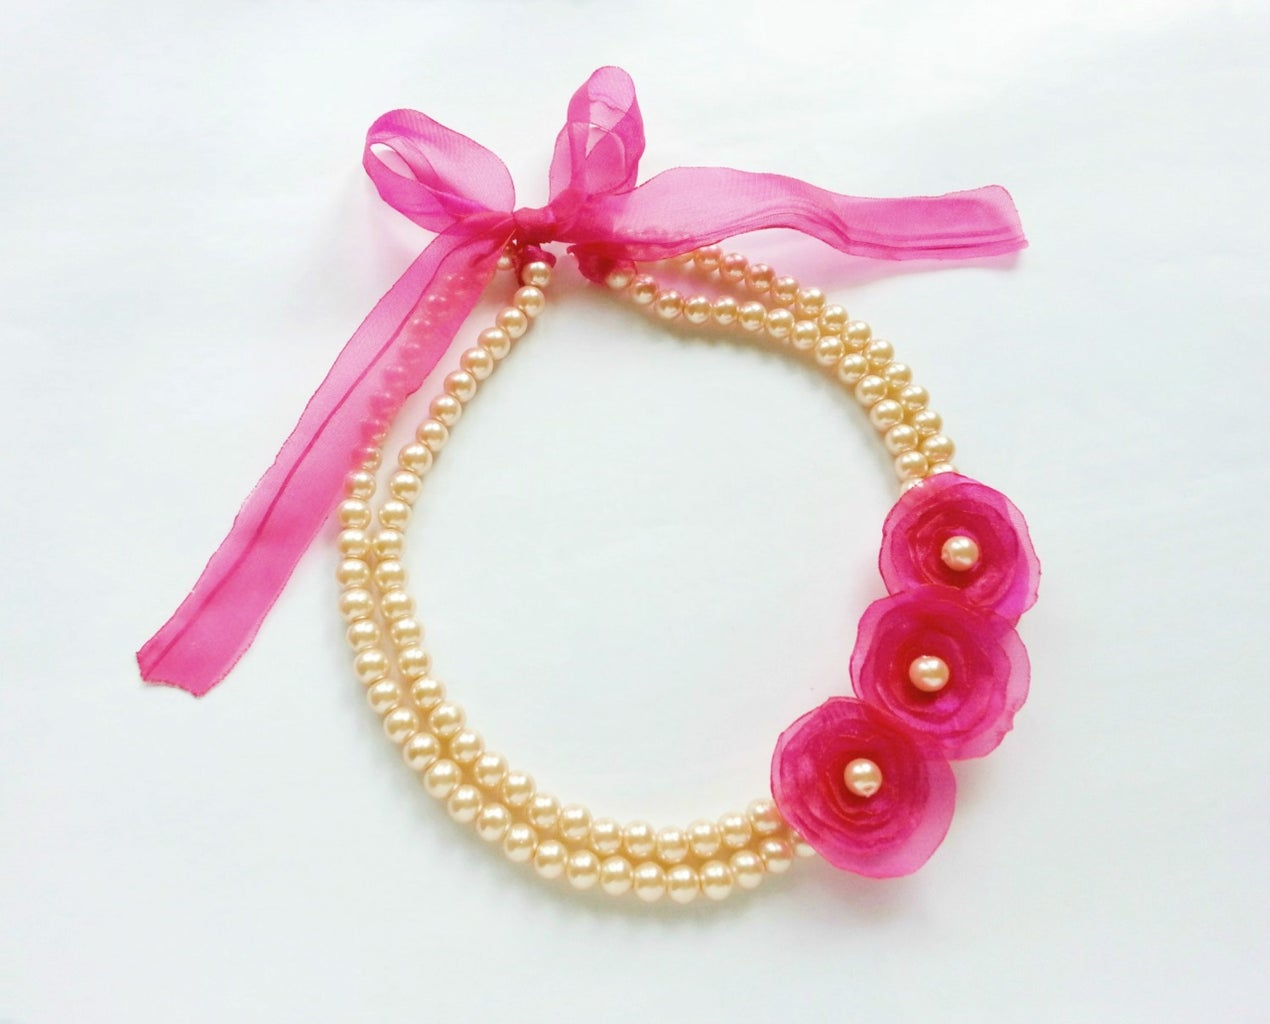 DIY Flower and Pearl Necklace